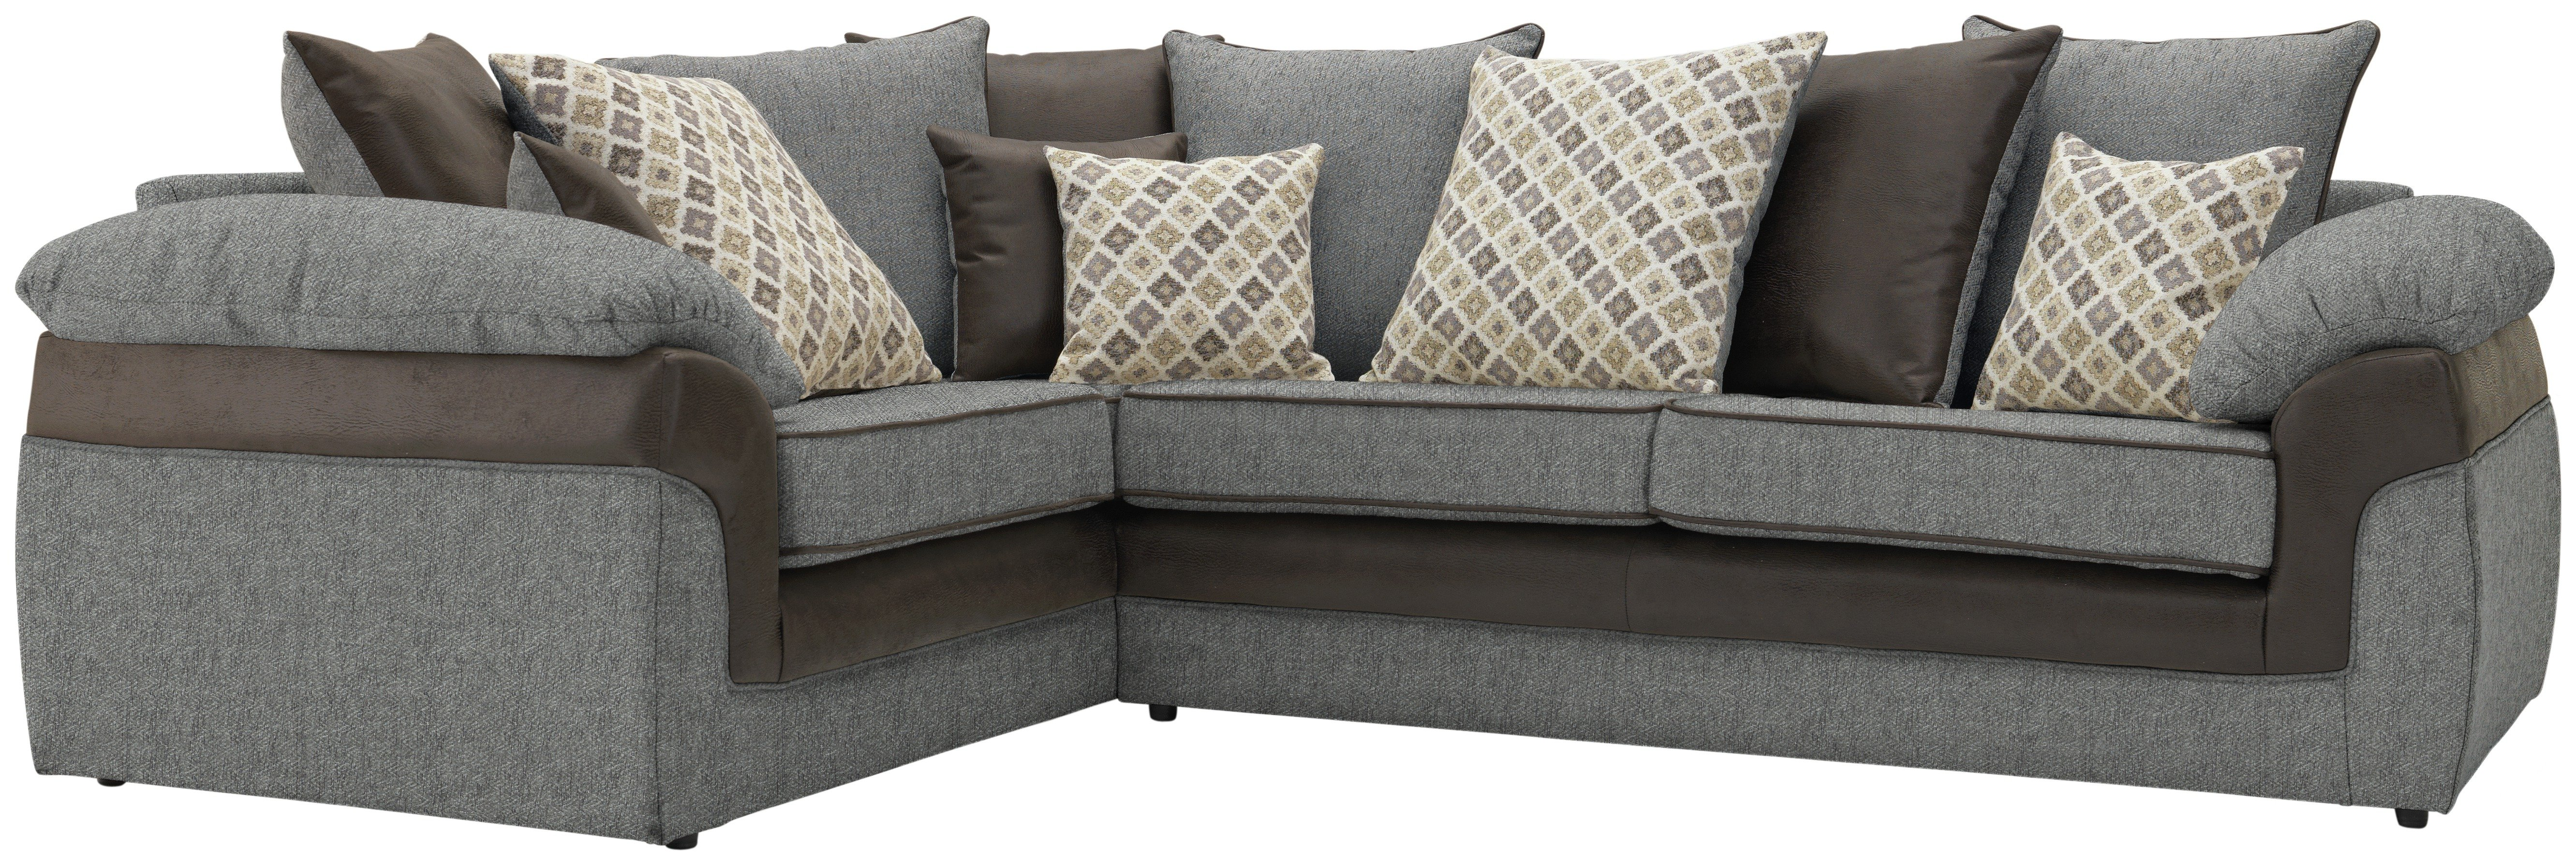 argos ava fabric sofa review large l shaped dimensions collection maddison left hand corner